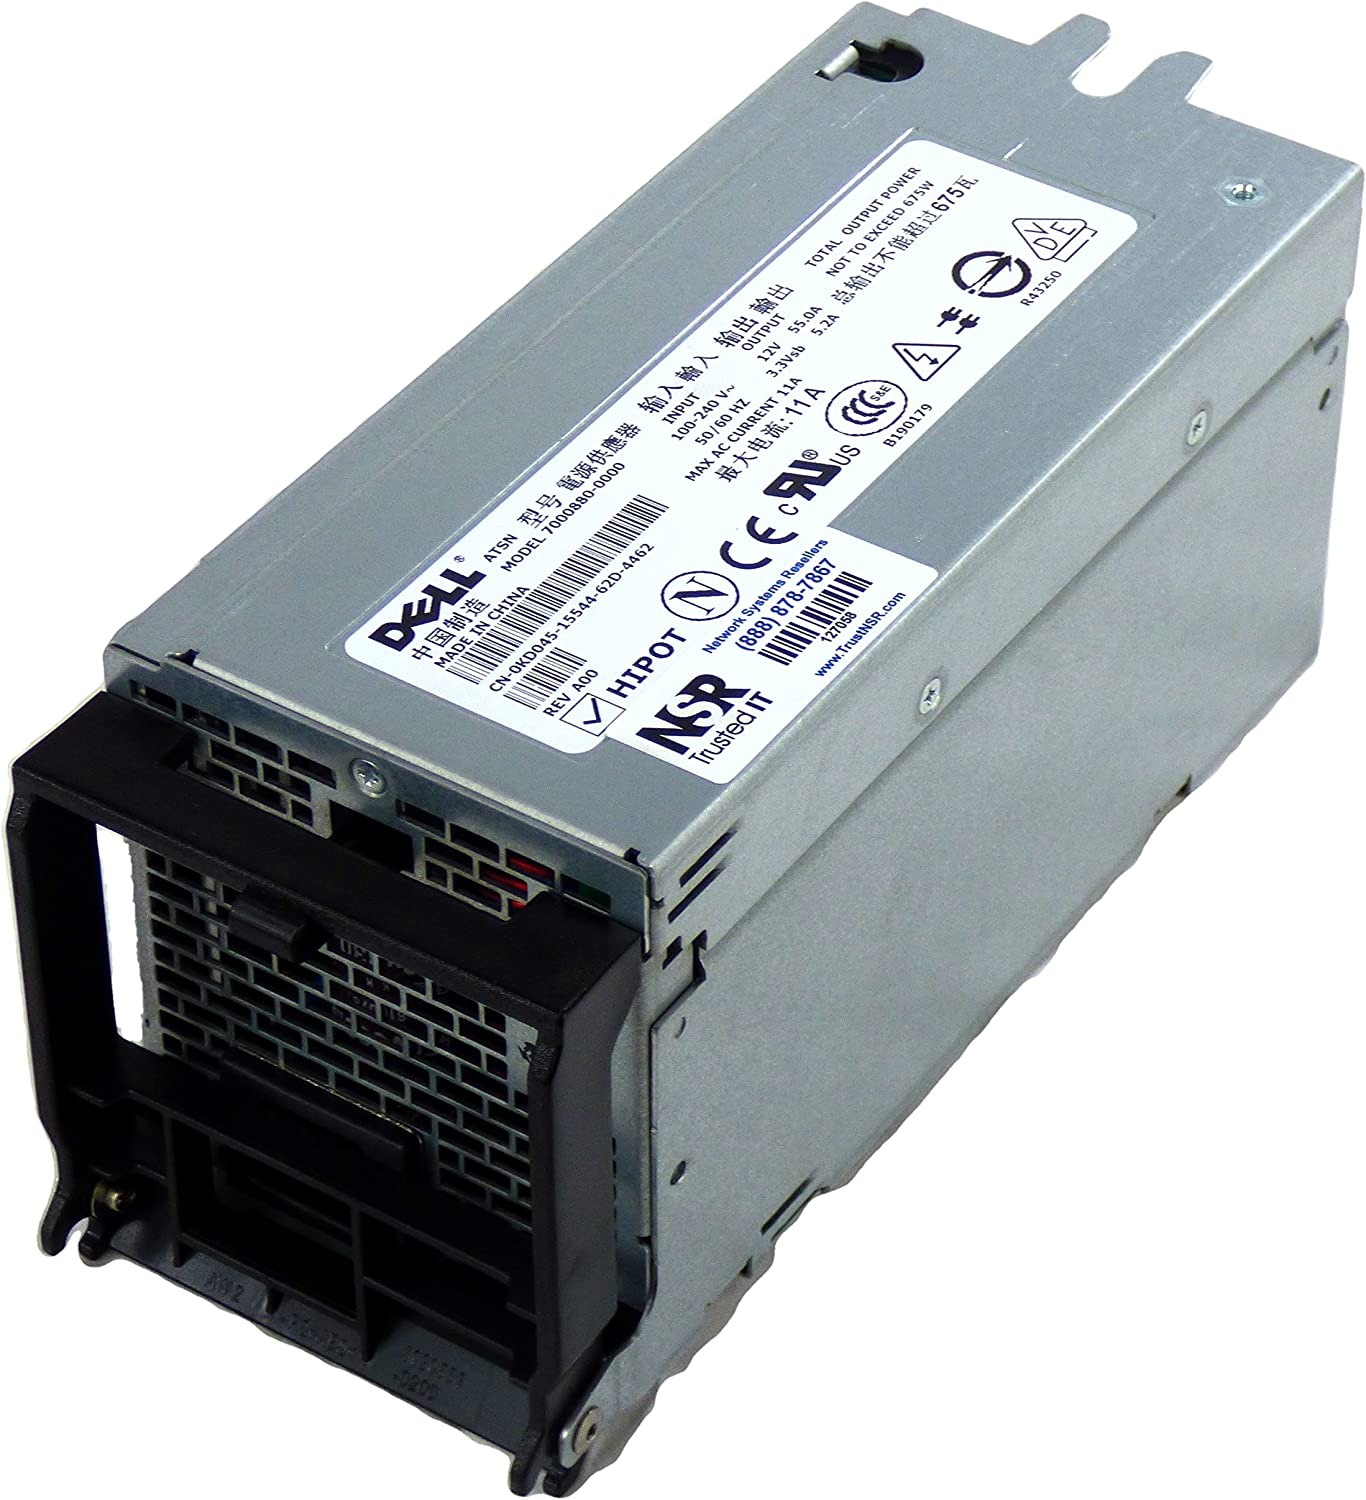 Dell P2591 675 Watt Redundant Power Supply for PowerEdge 1800.